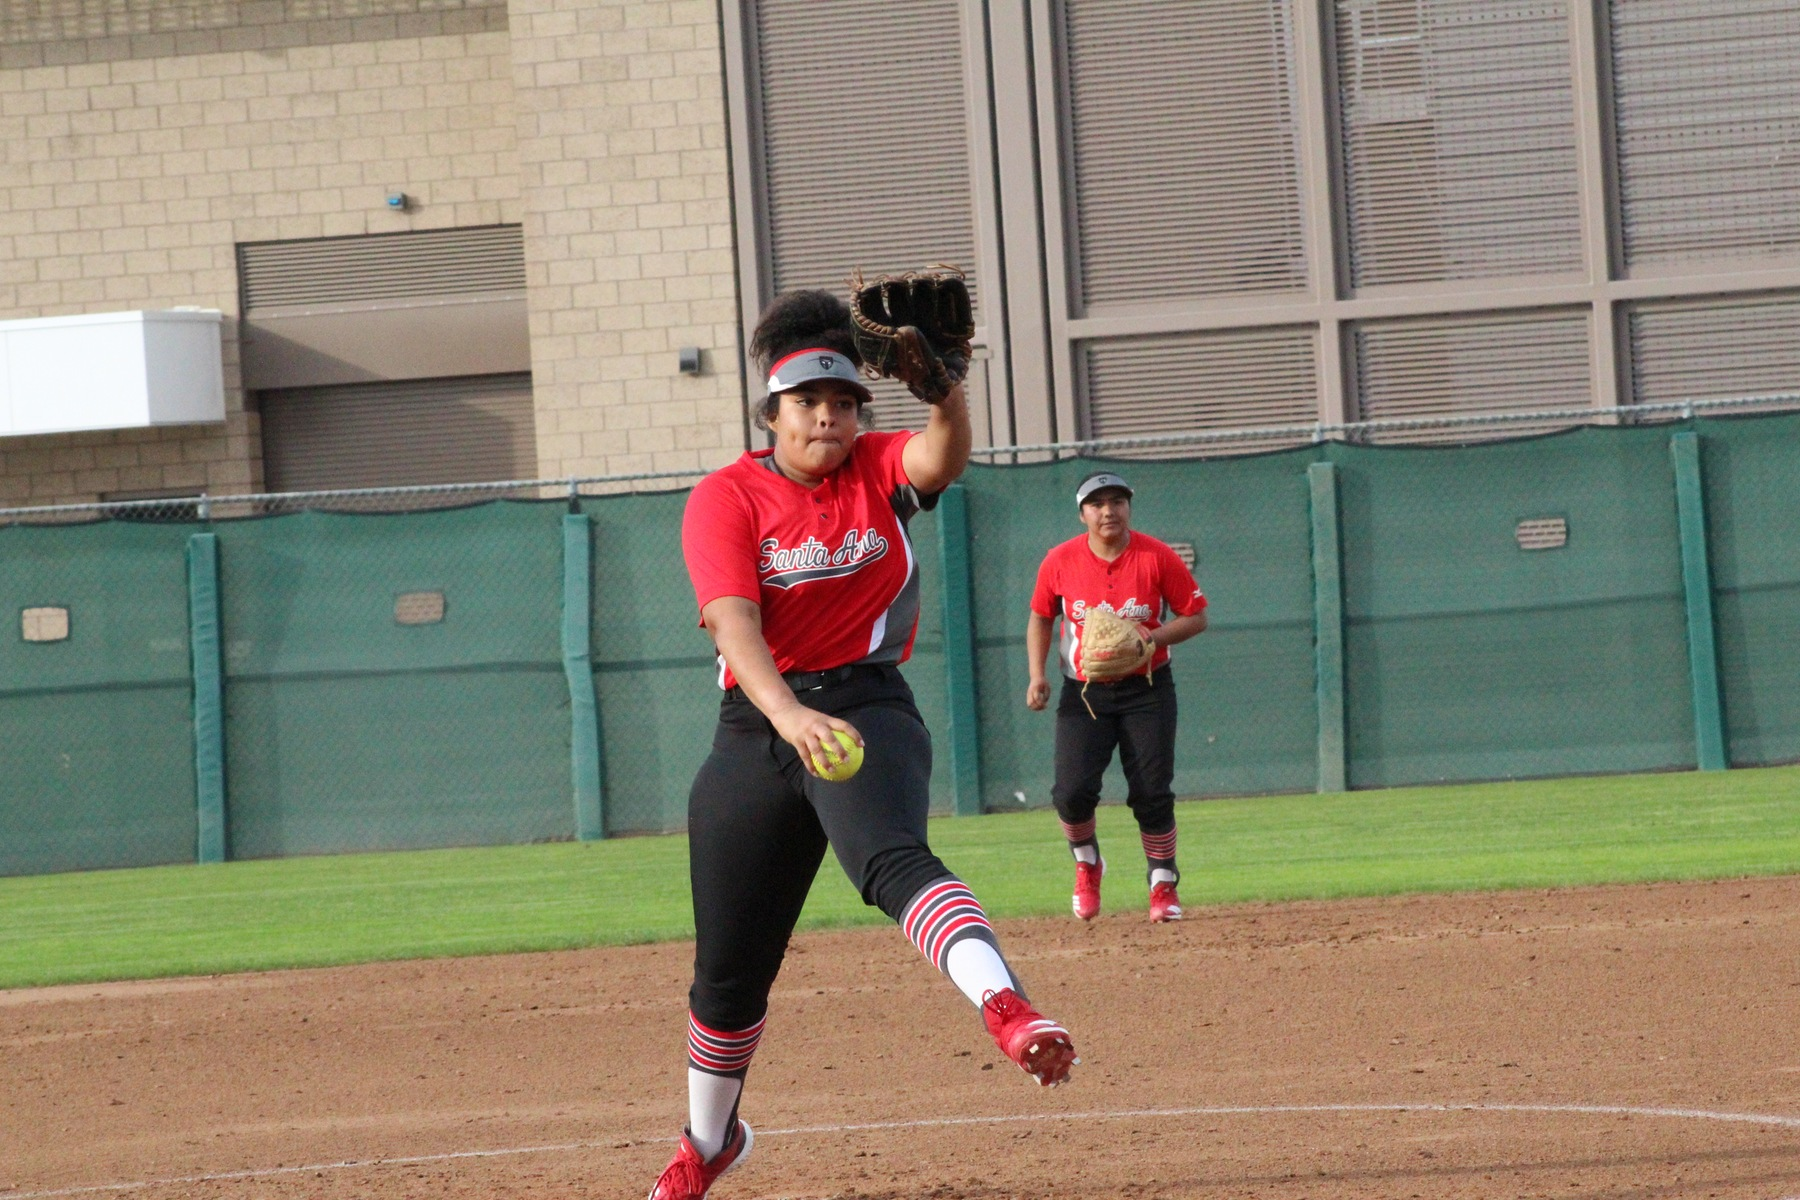 Hodge Leads Late Rally, Dons Win 6-2